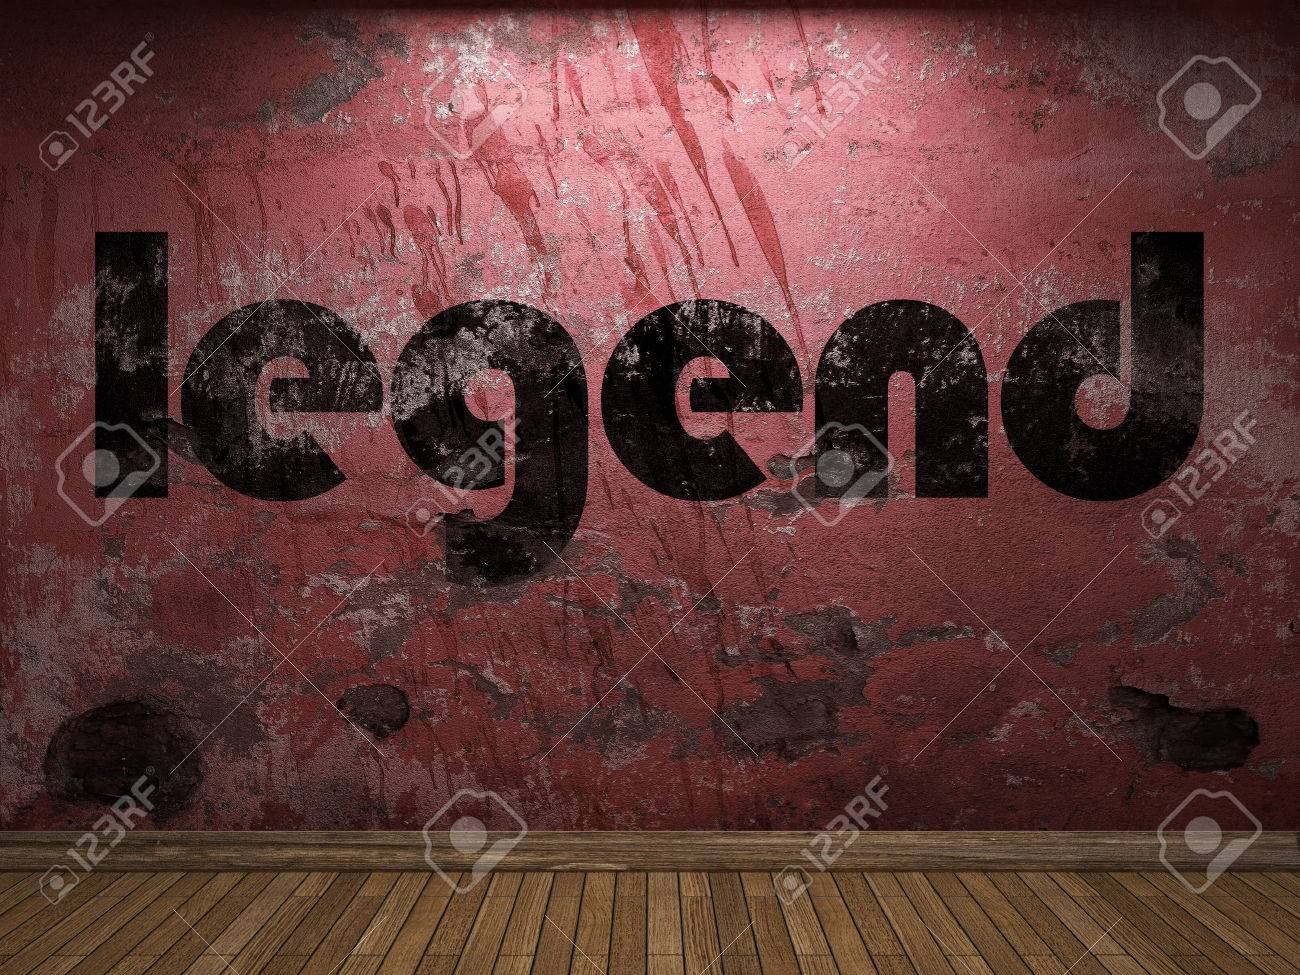 a legend stock photos pictures royalty a legend images and a legend legend word on red wall stock photo